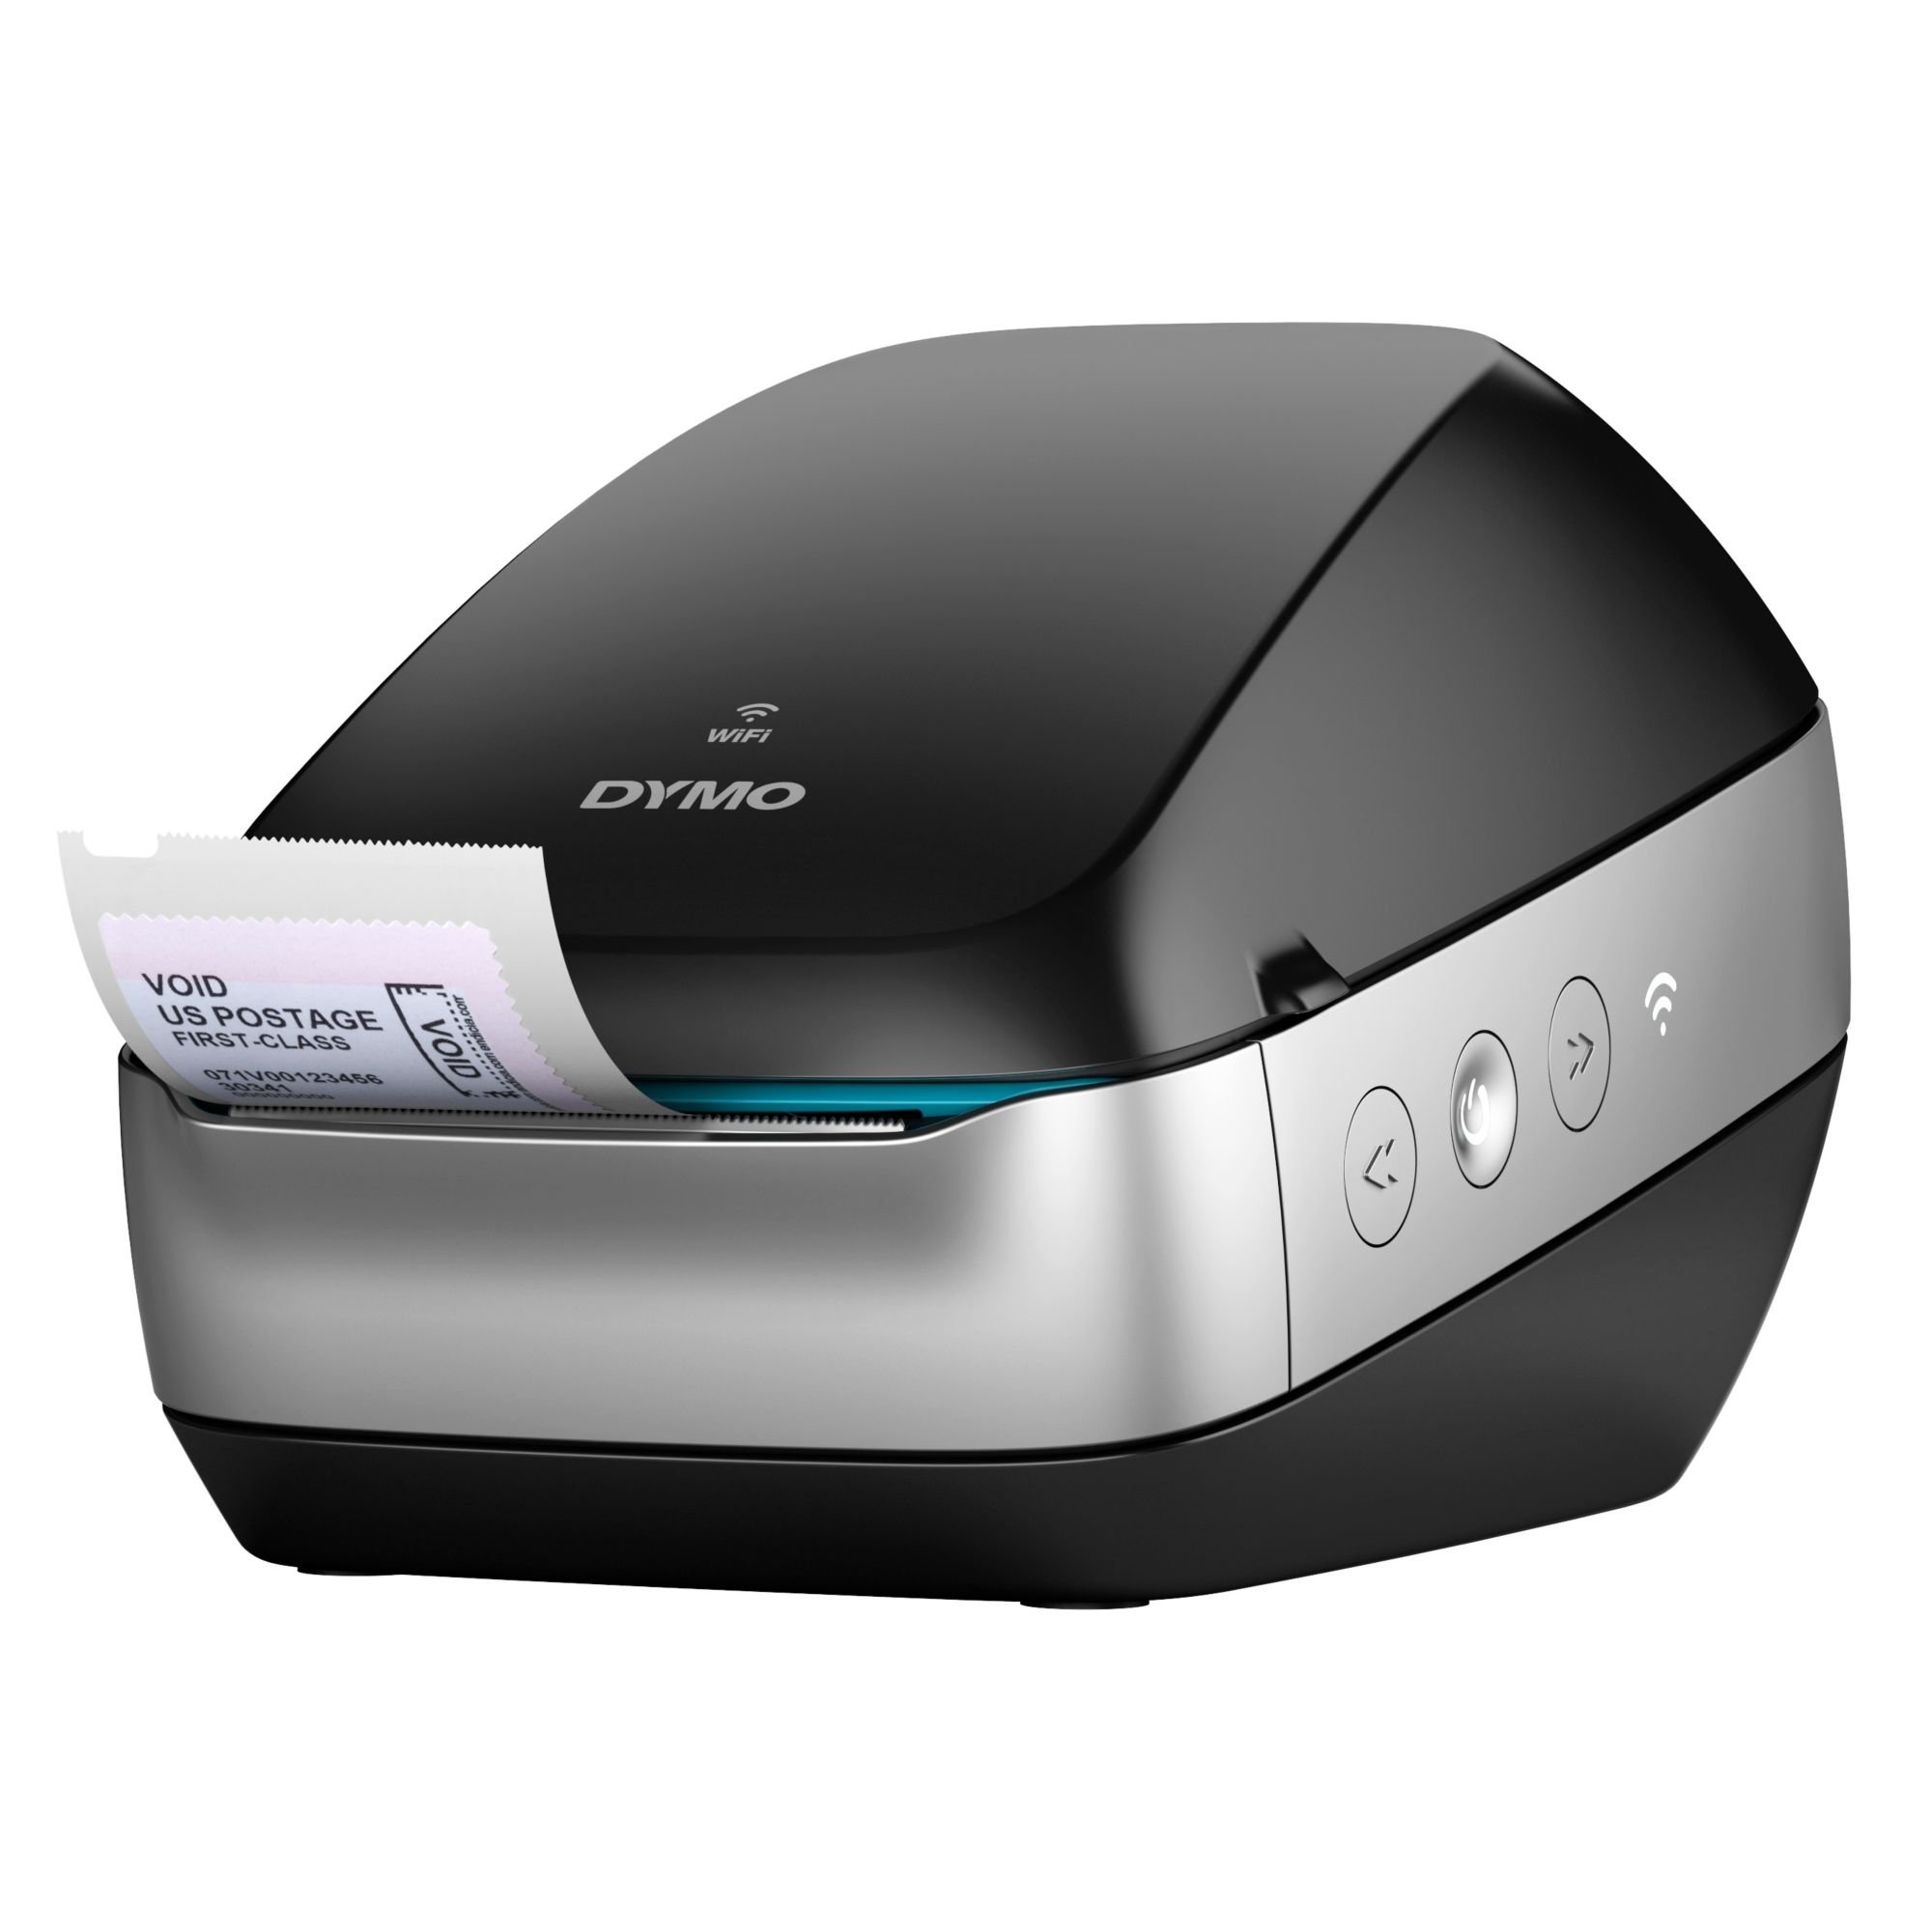 DYMO LabelWriter Wireless Printer, Black (2002150)